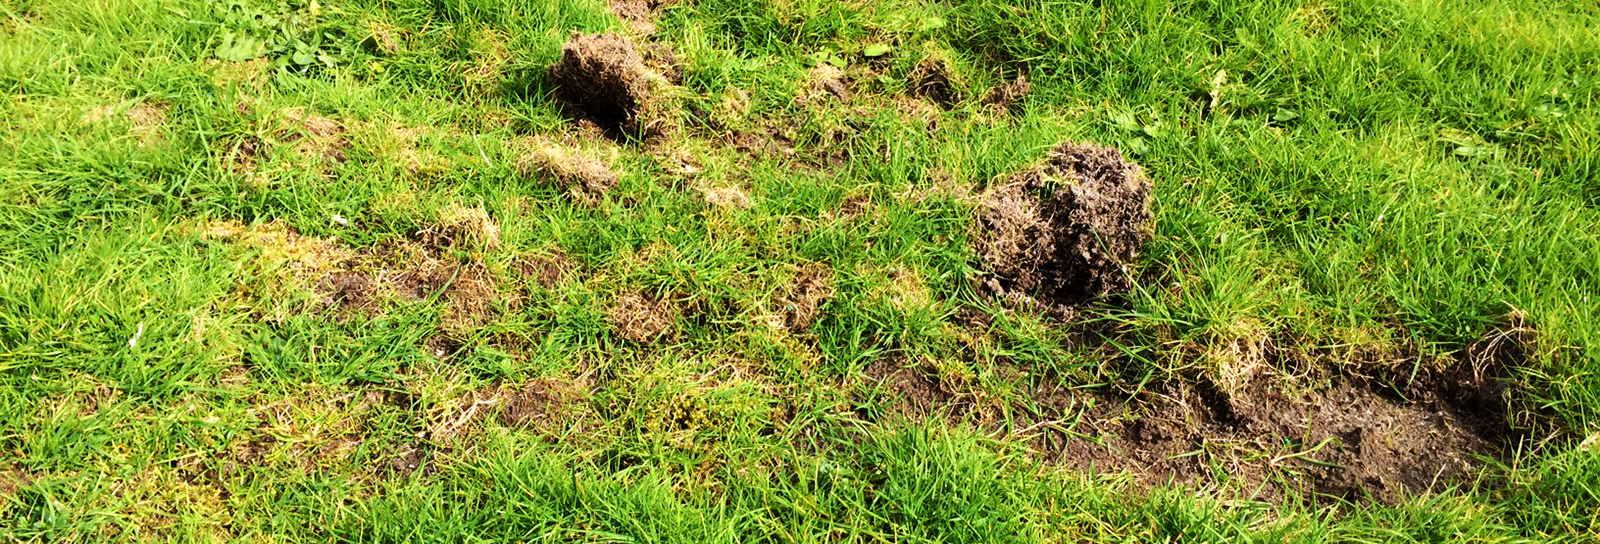 Chafer beetle infested damaged lawn